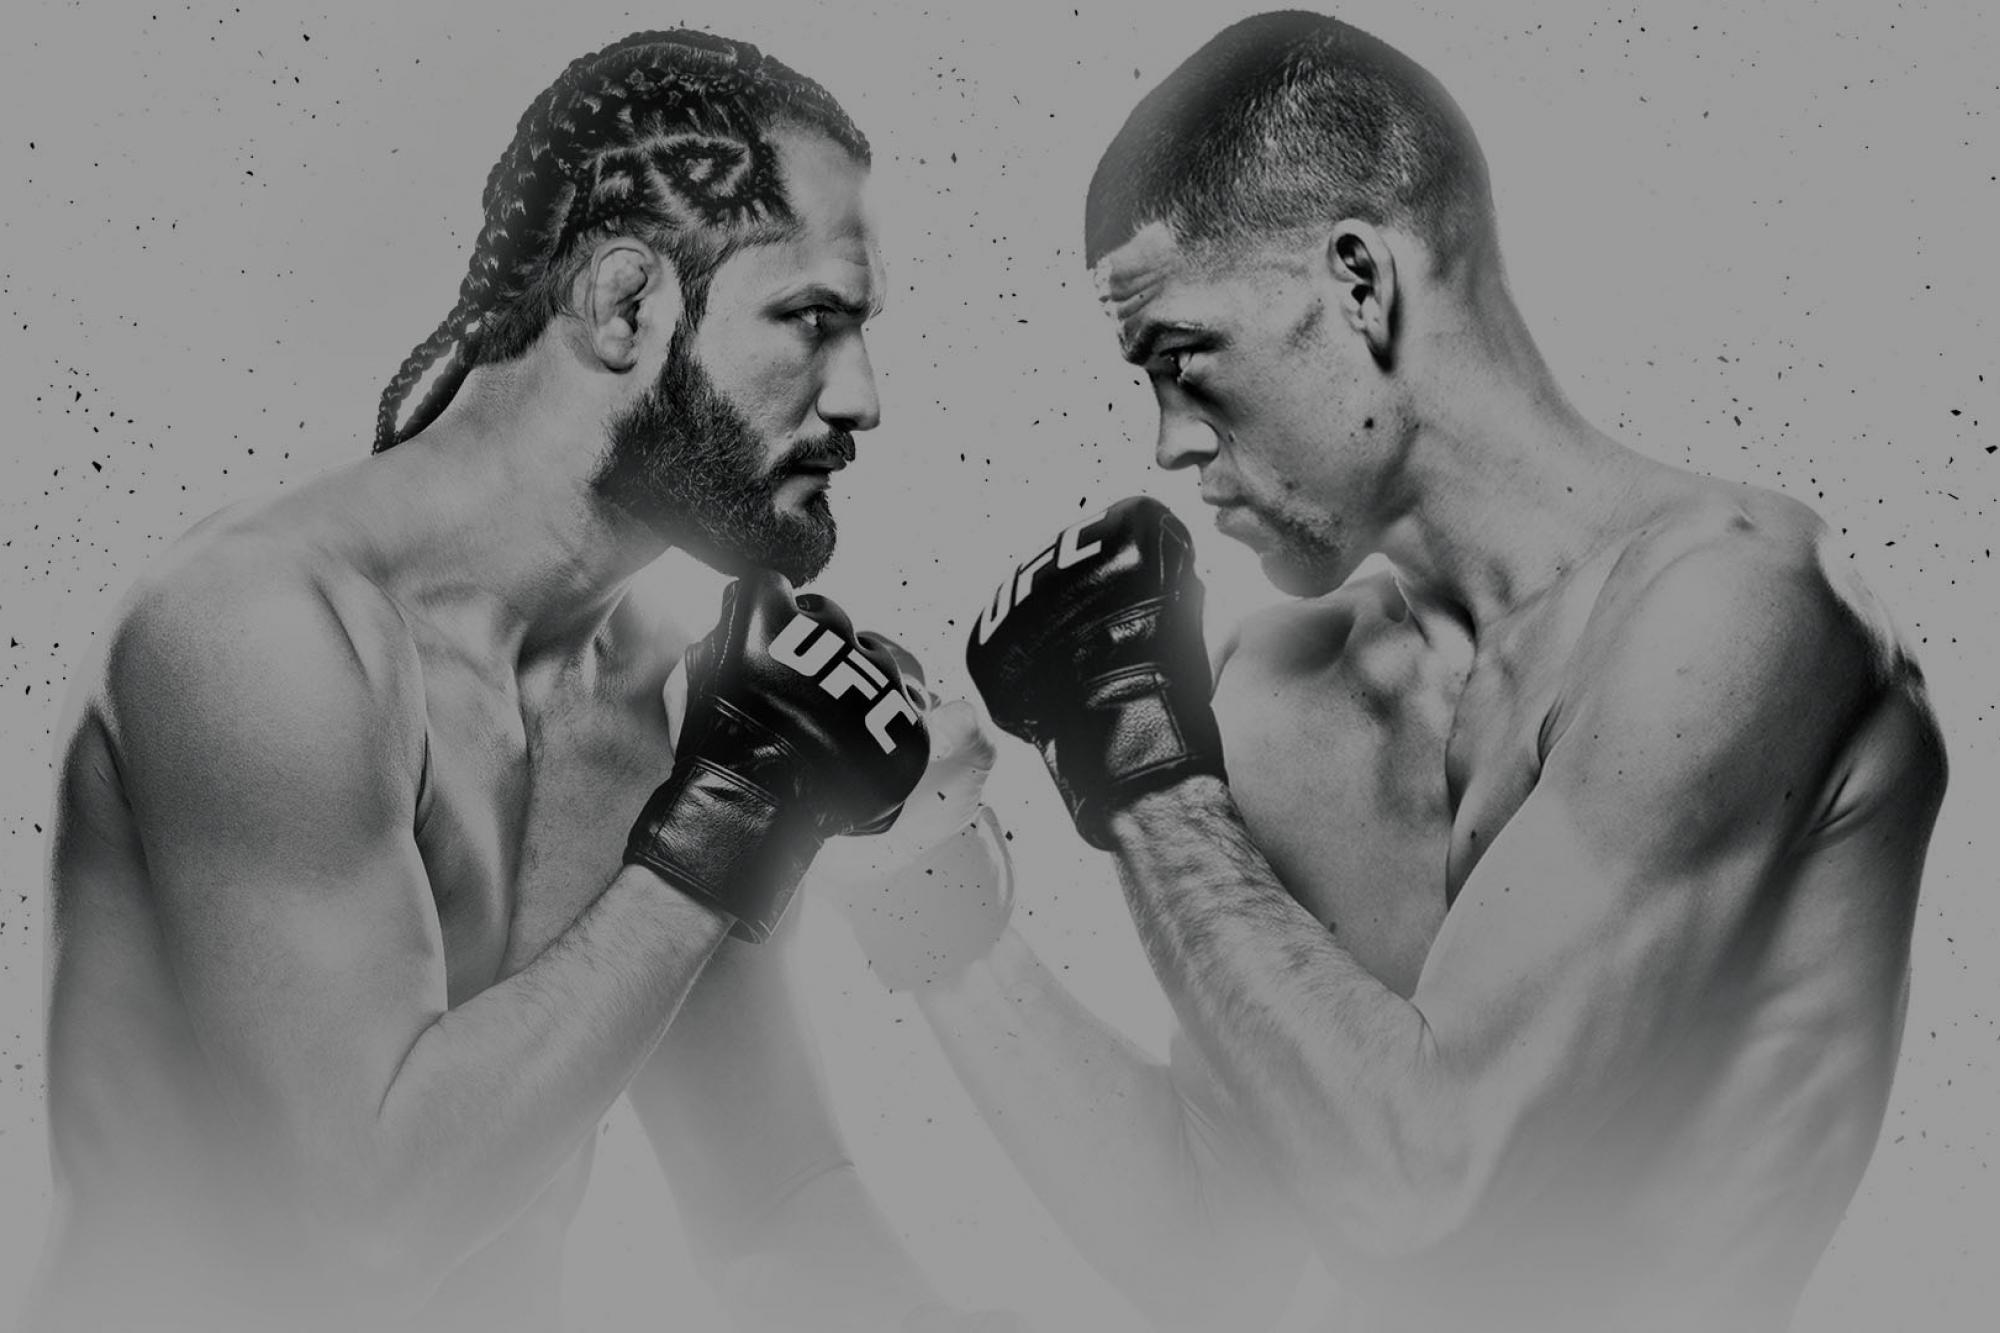 Nate Diaz vs. Masvidal Free Expert Betting Picks And Odds